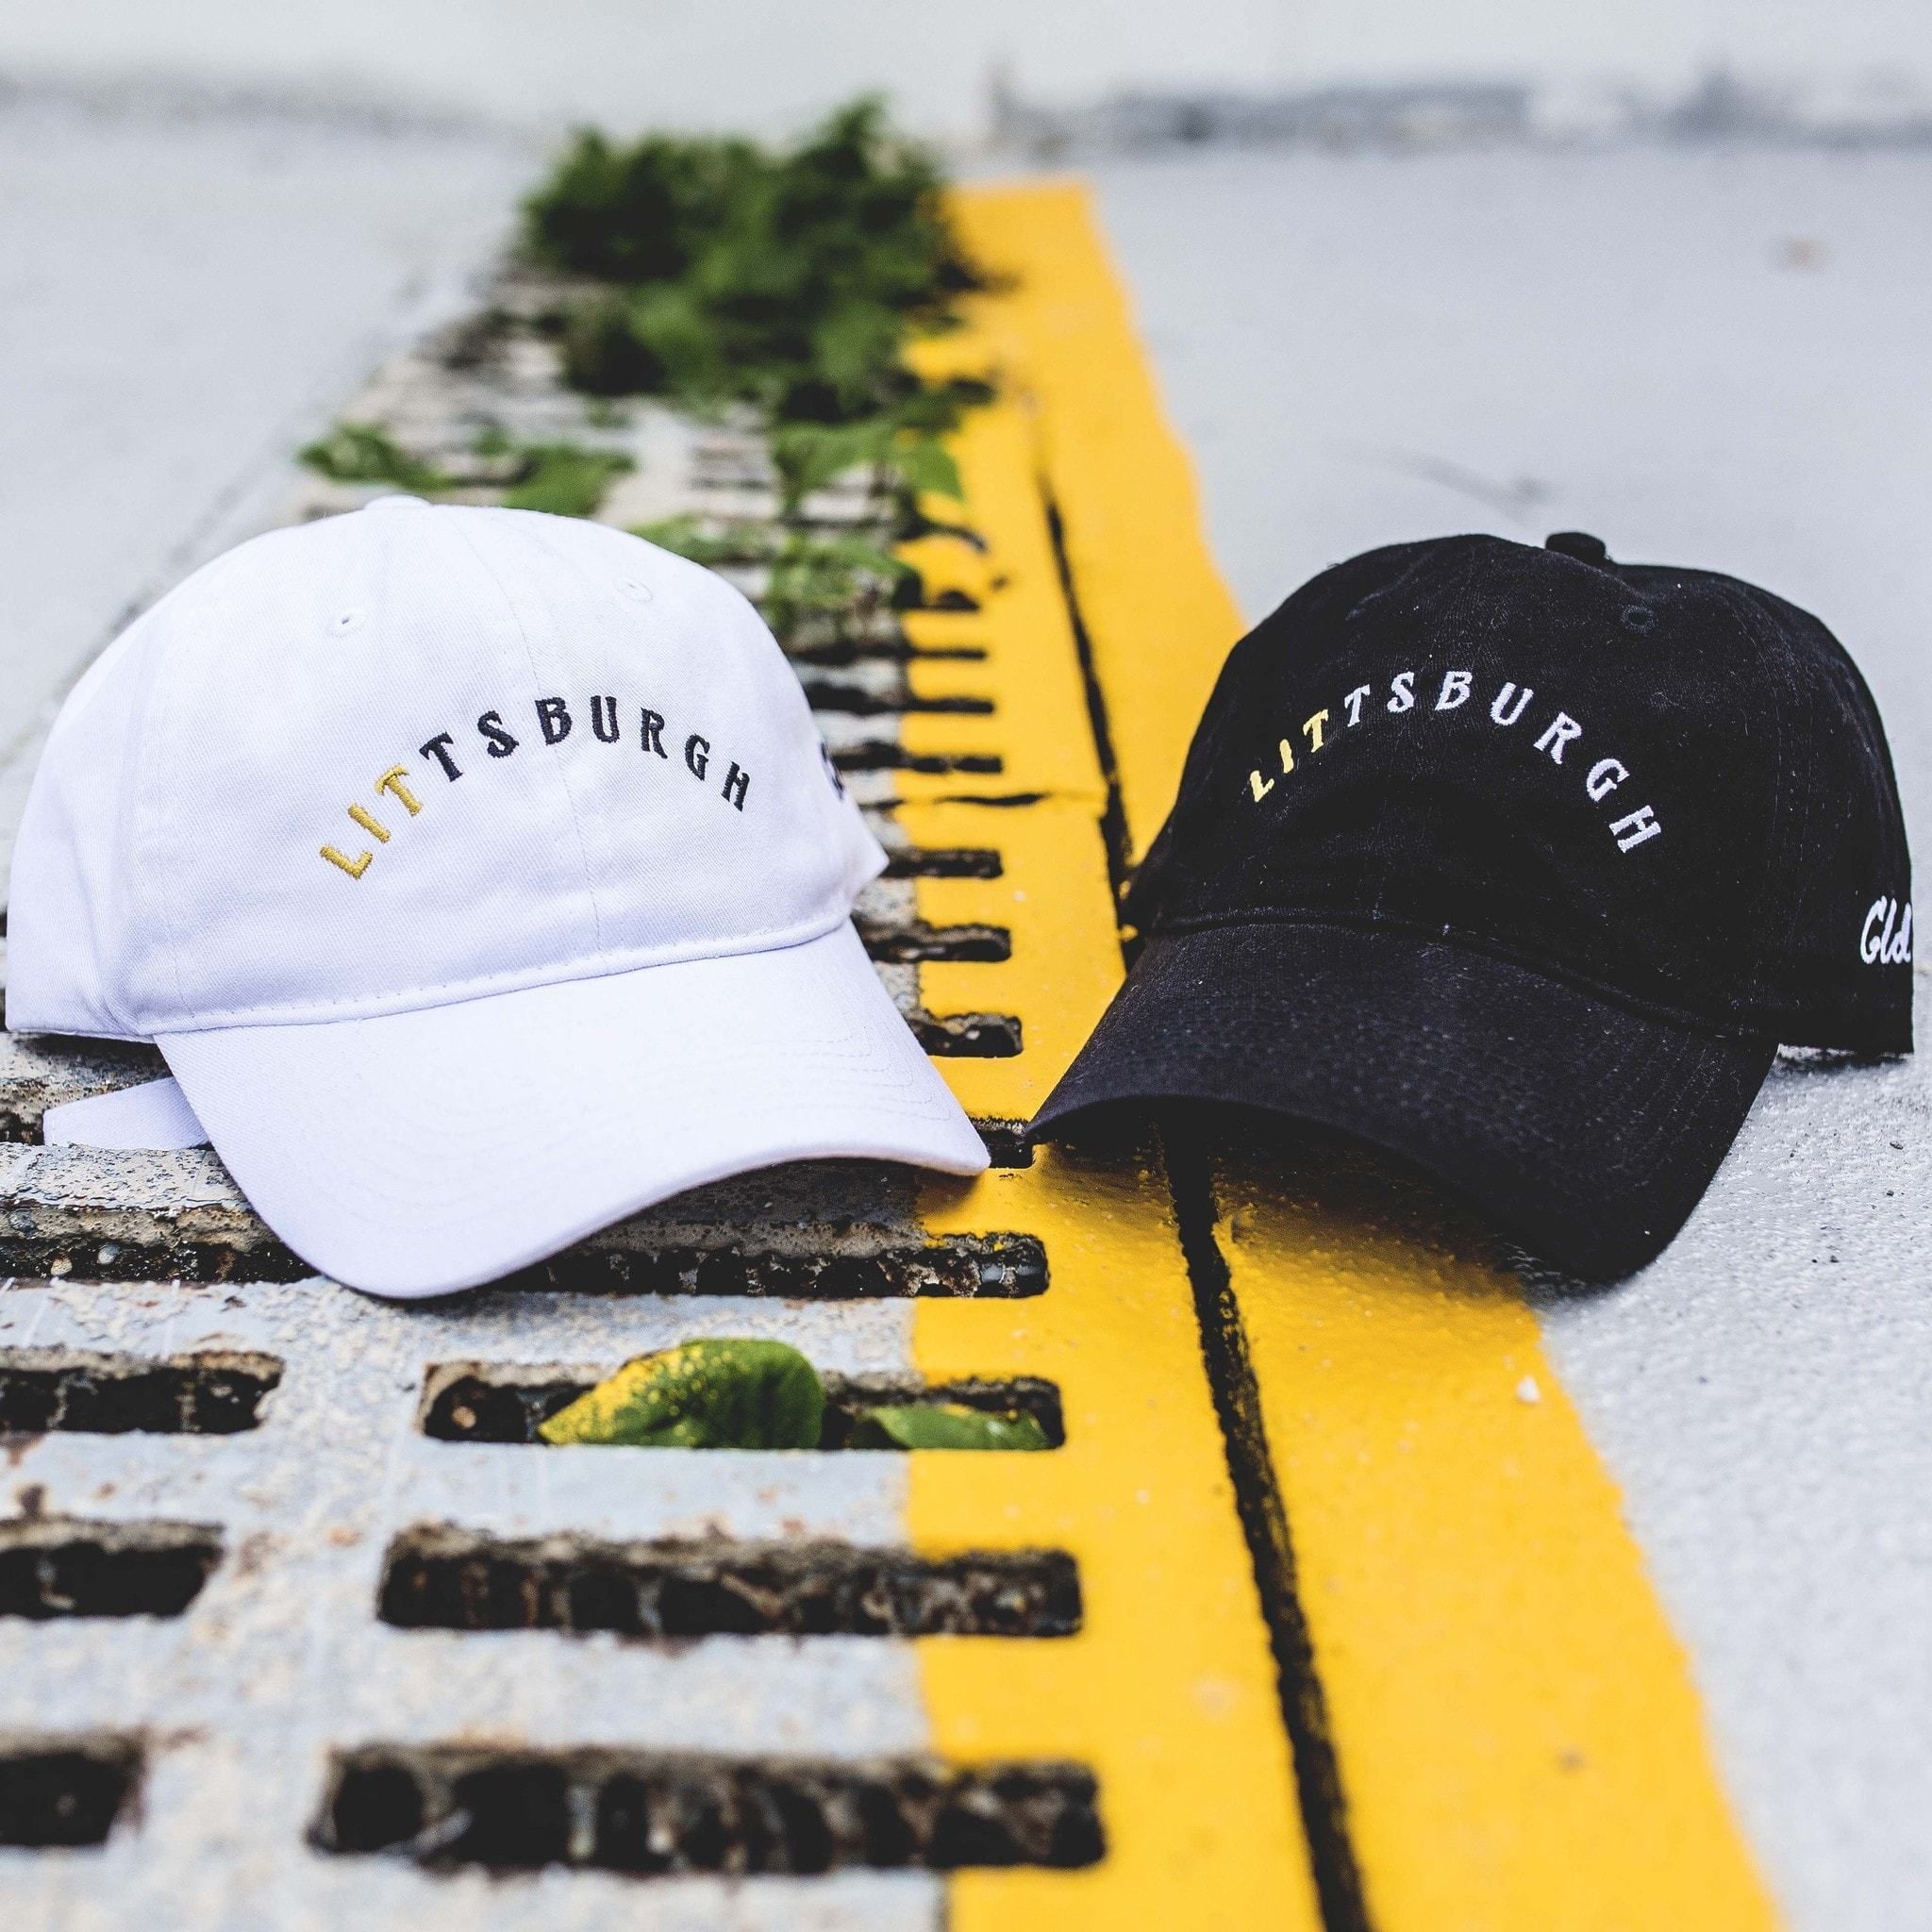 Littsburgh Hat - The GLD Shop